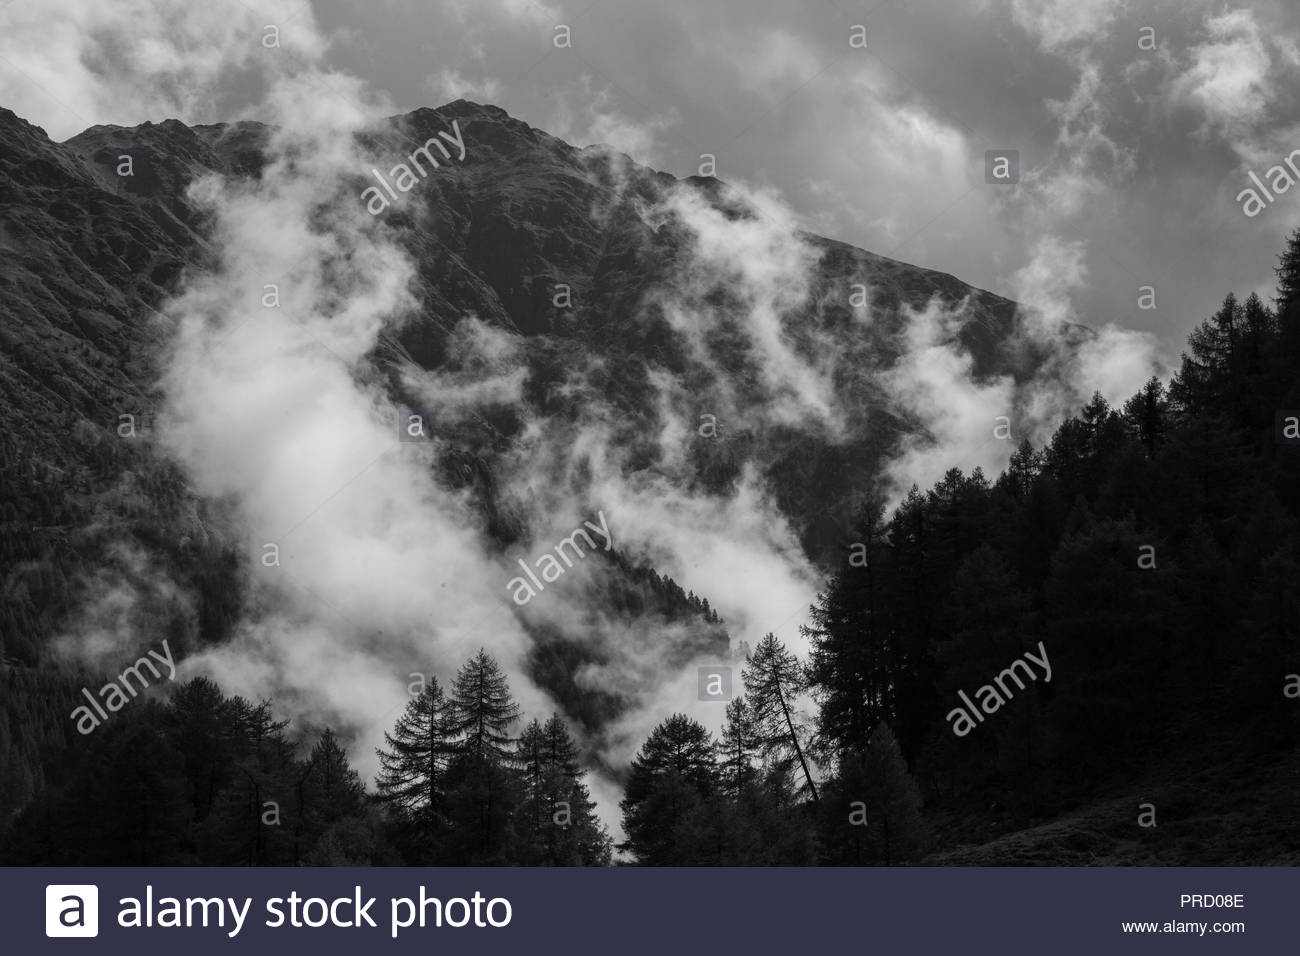 Morning fog in the alps - Stock Image